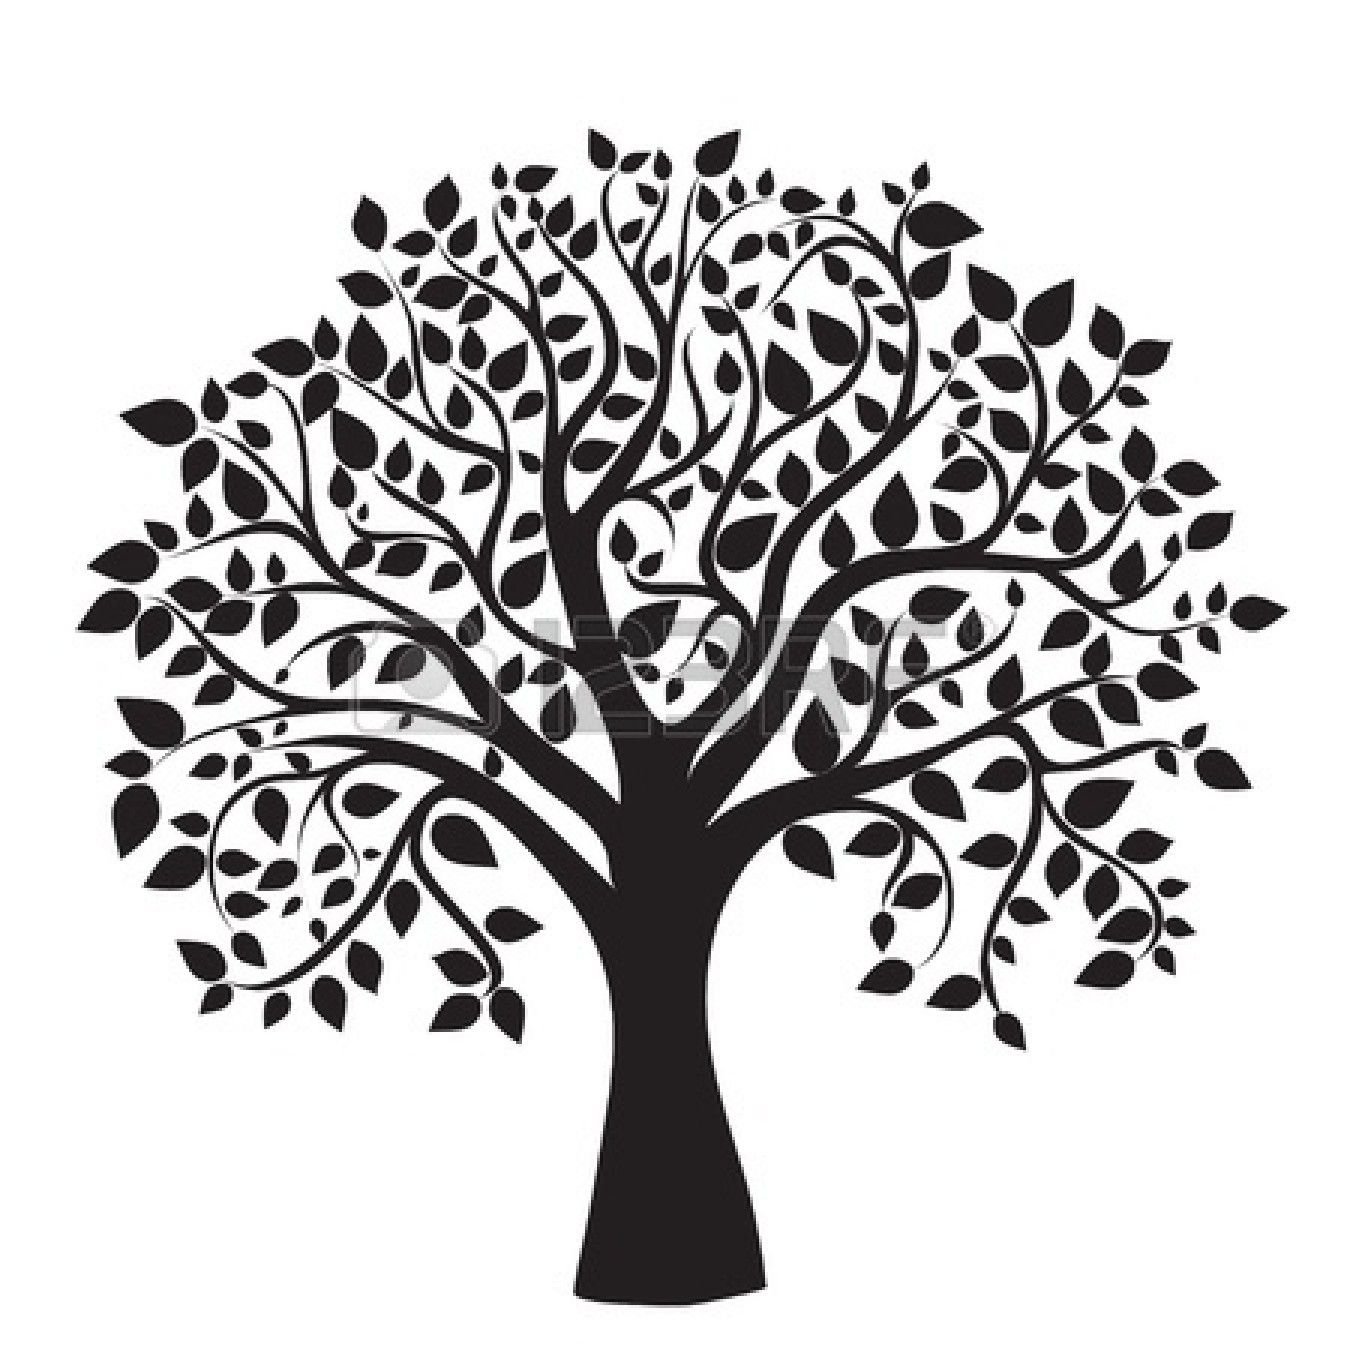 black tree silhouette isolated on white background | Family tree images,  Tree images, Family tree clipart